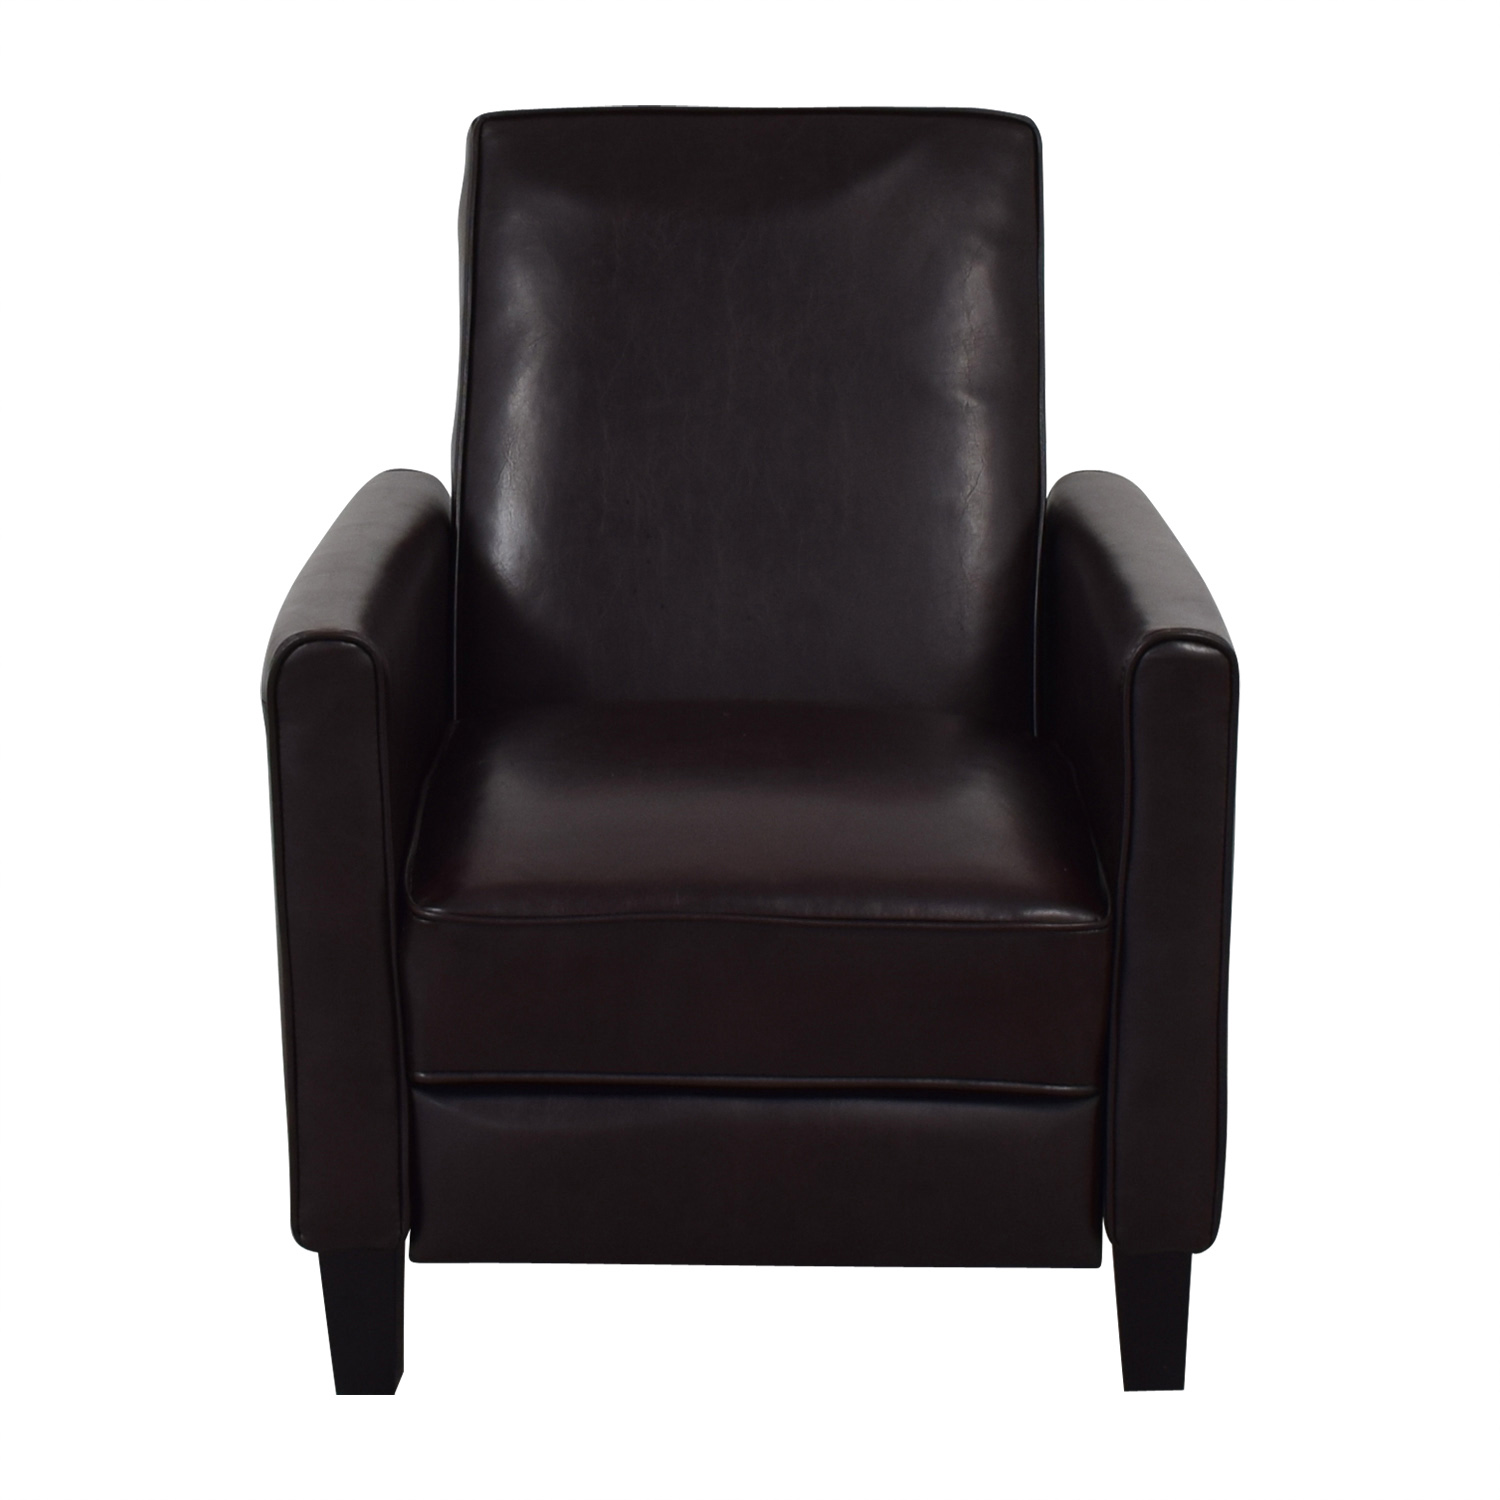 shop Zipcode Design Zipcode Design Lana Reclining Club Chair online